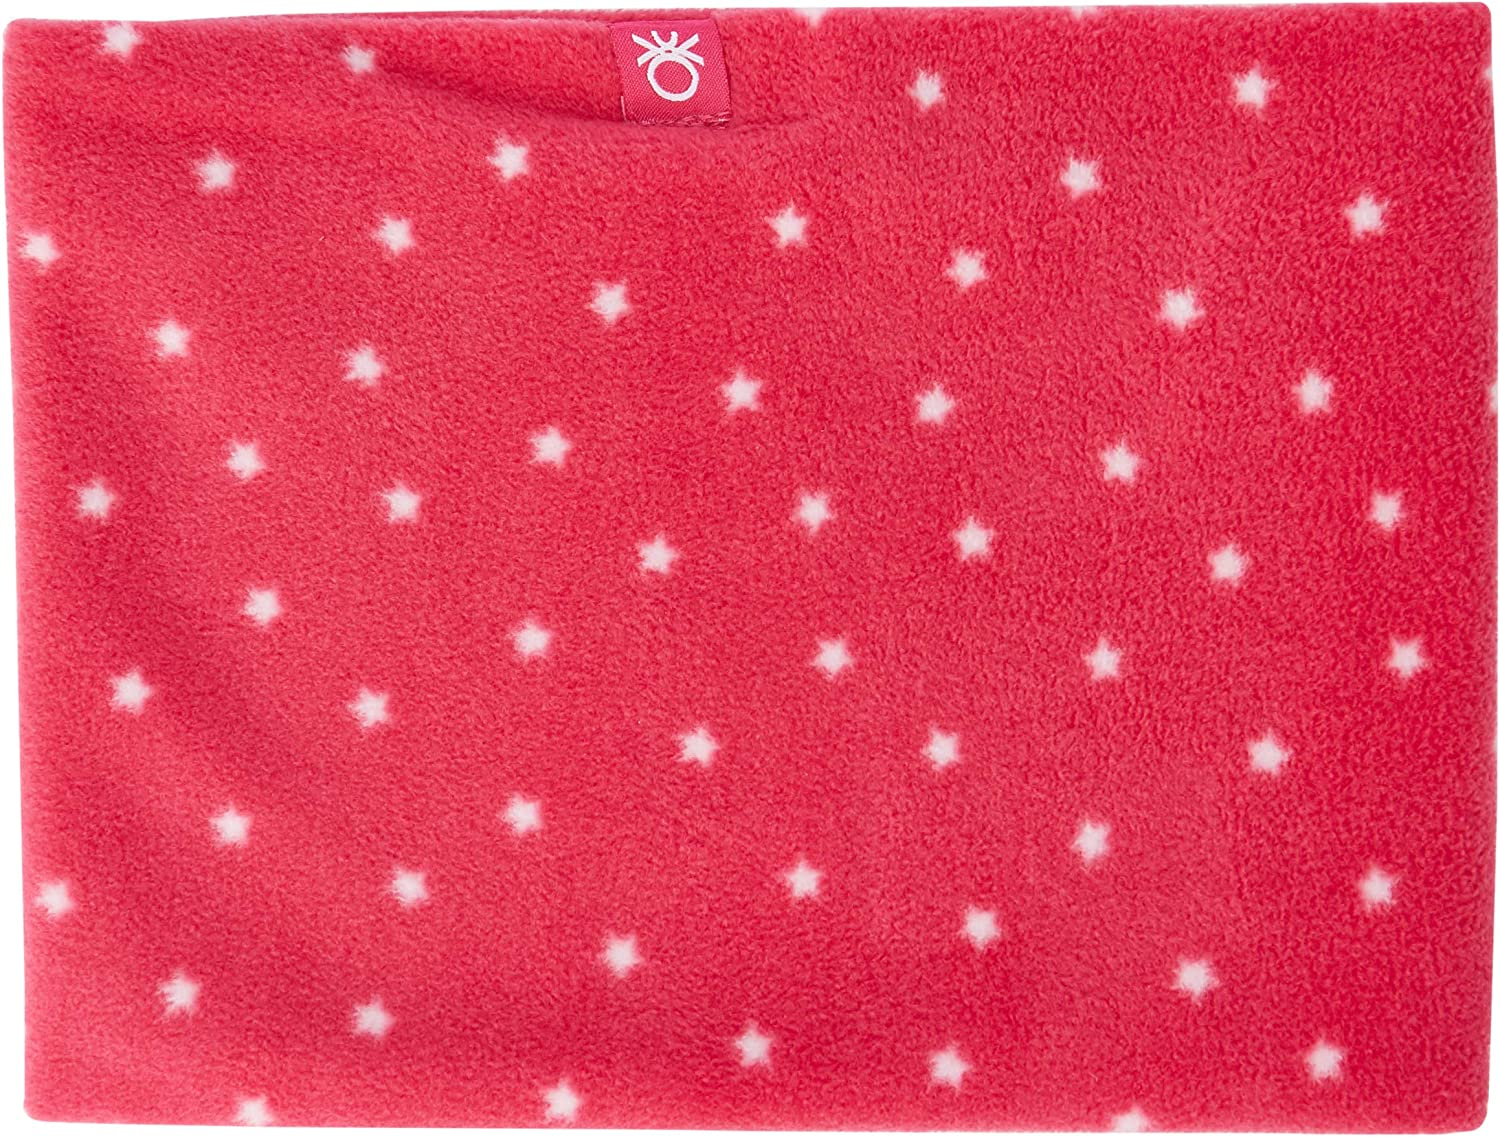 Pink Fuxia 906 United Colors of Benetton Jungen Collo Pile Stelle Schal Herstellergr/ö/ße: OS One Size